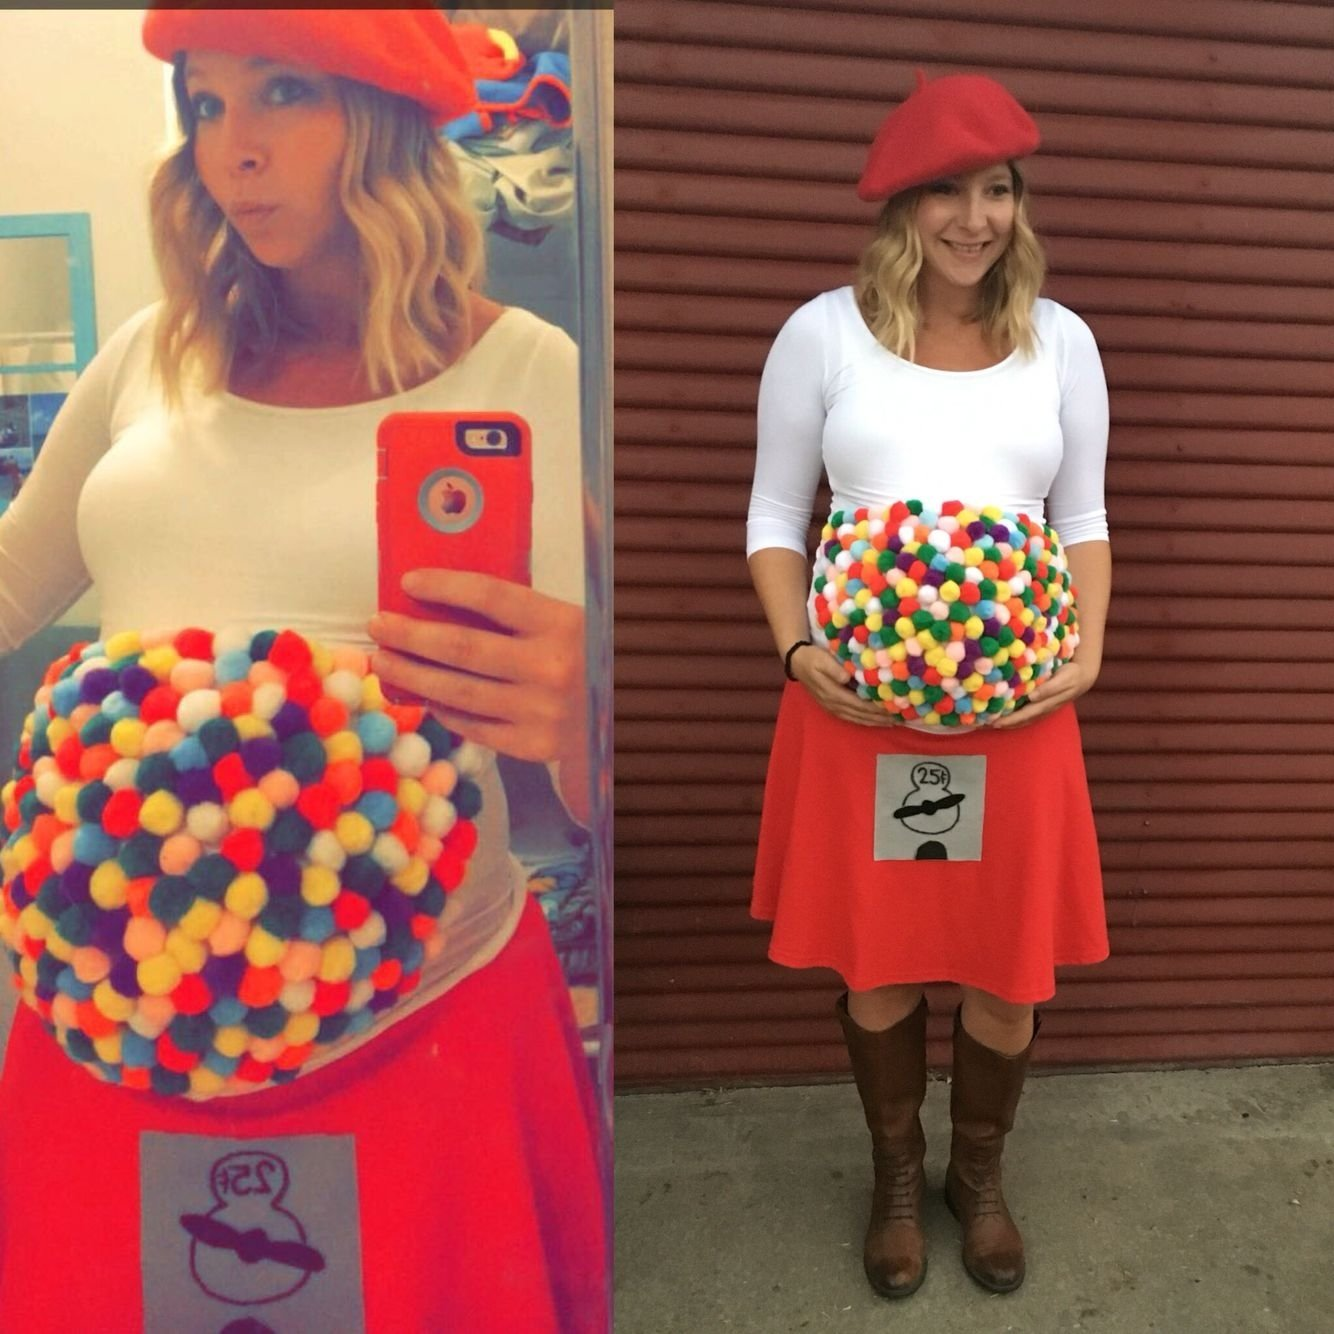 10 Perfect Halloween Costume Ideas For Pregnant pregnant costumes costumes pinterest costumes halloween 4